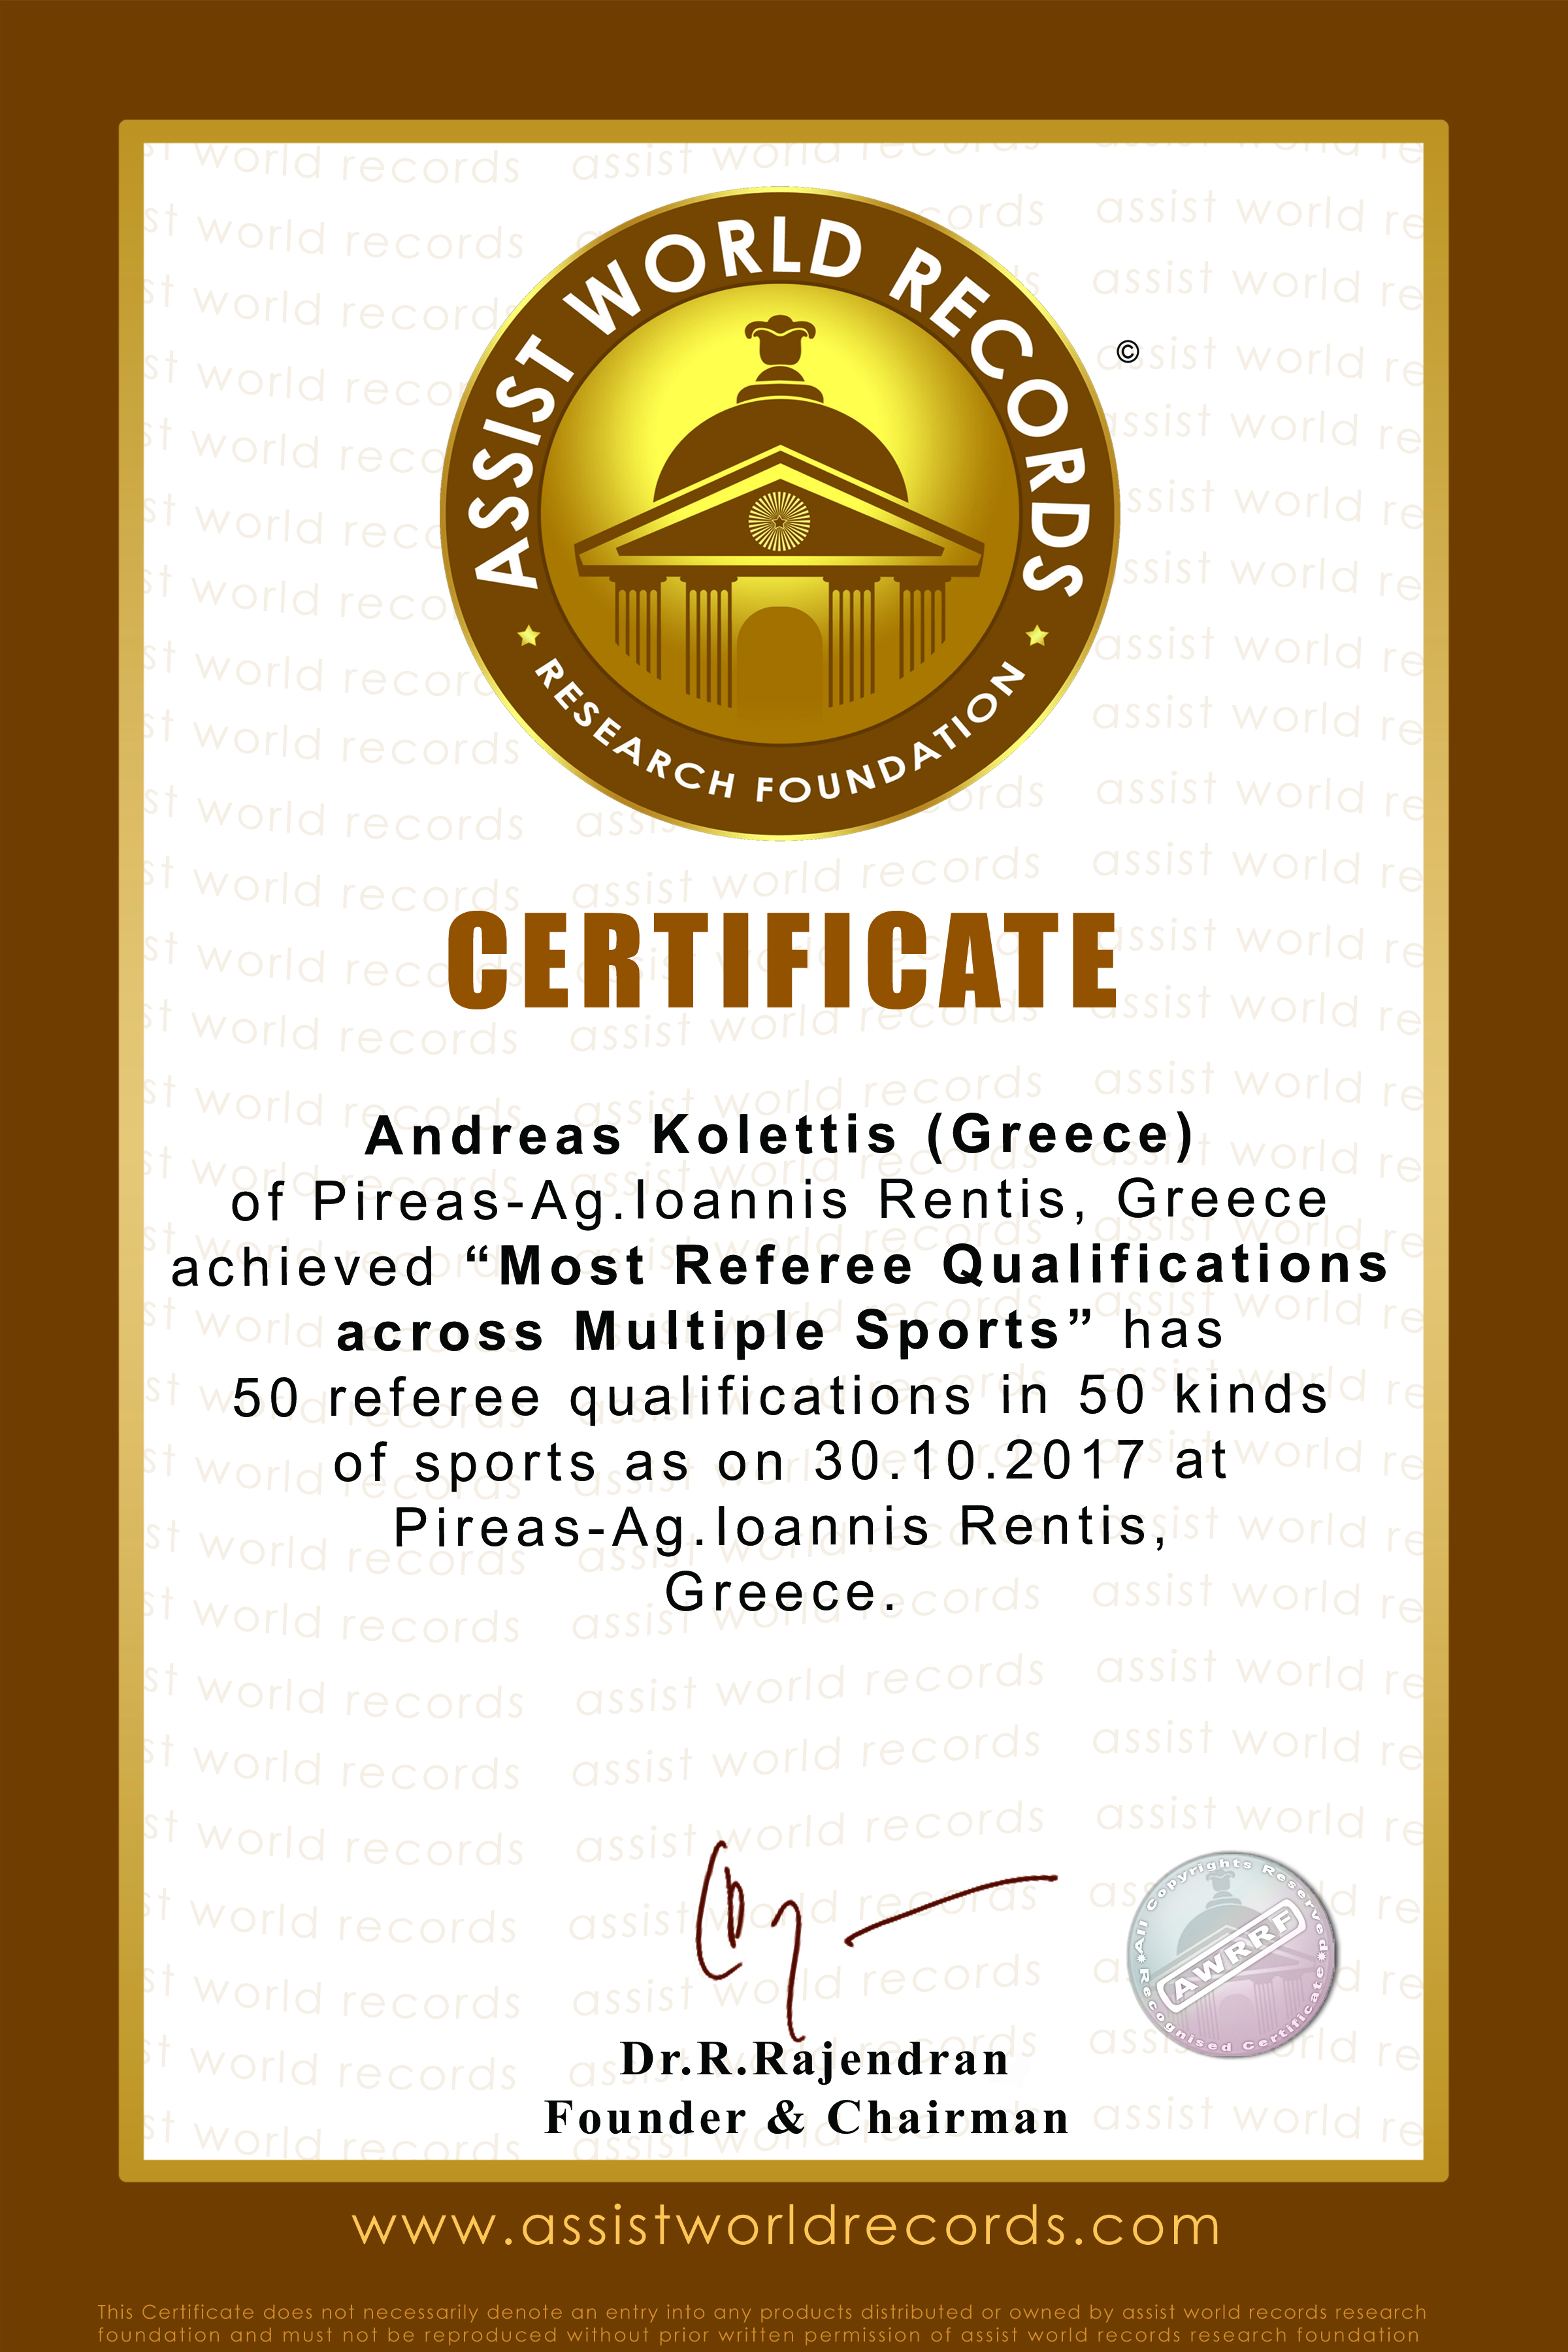 ASWR-CERTIFICATE 50 SPORTS